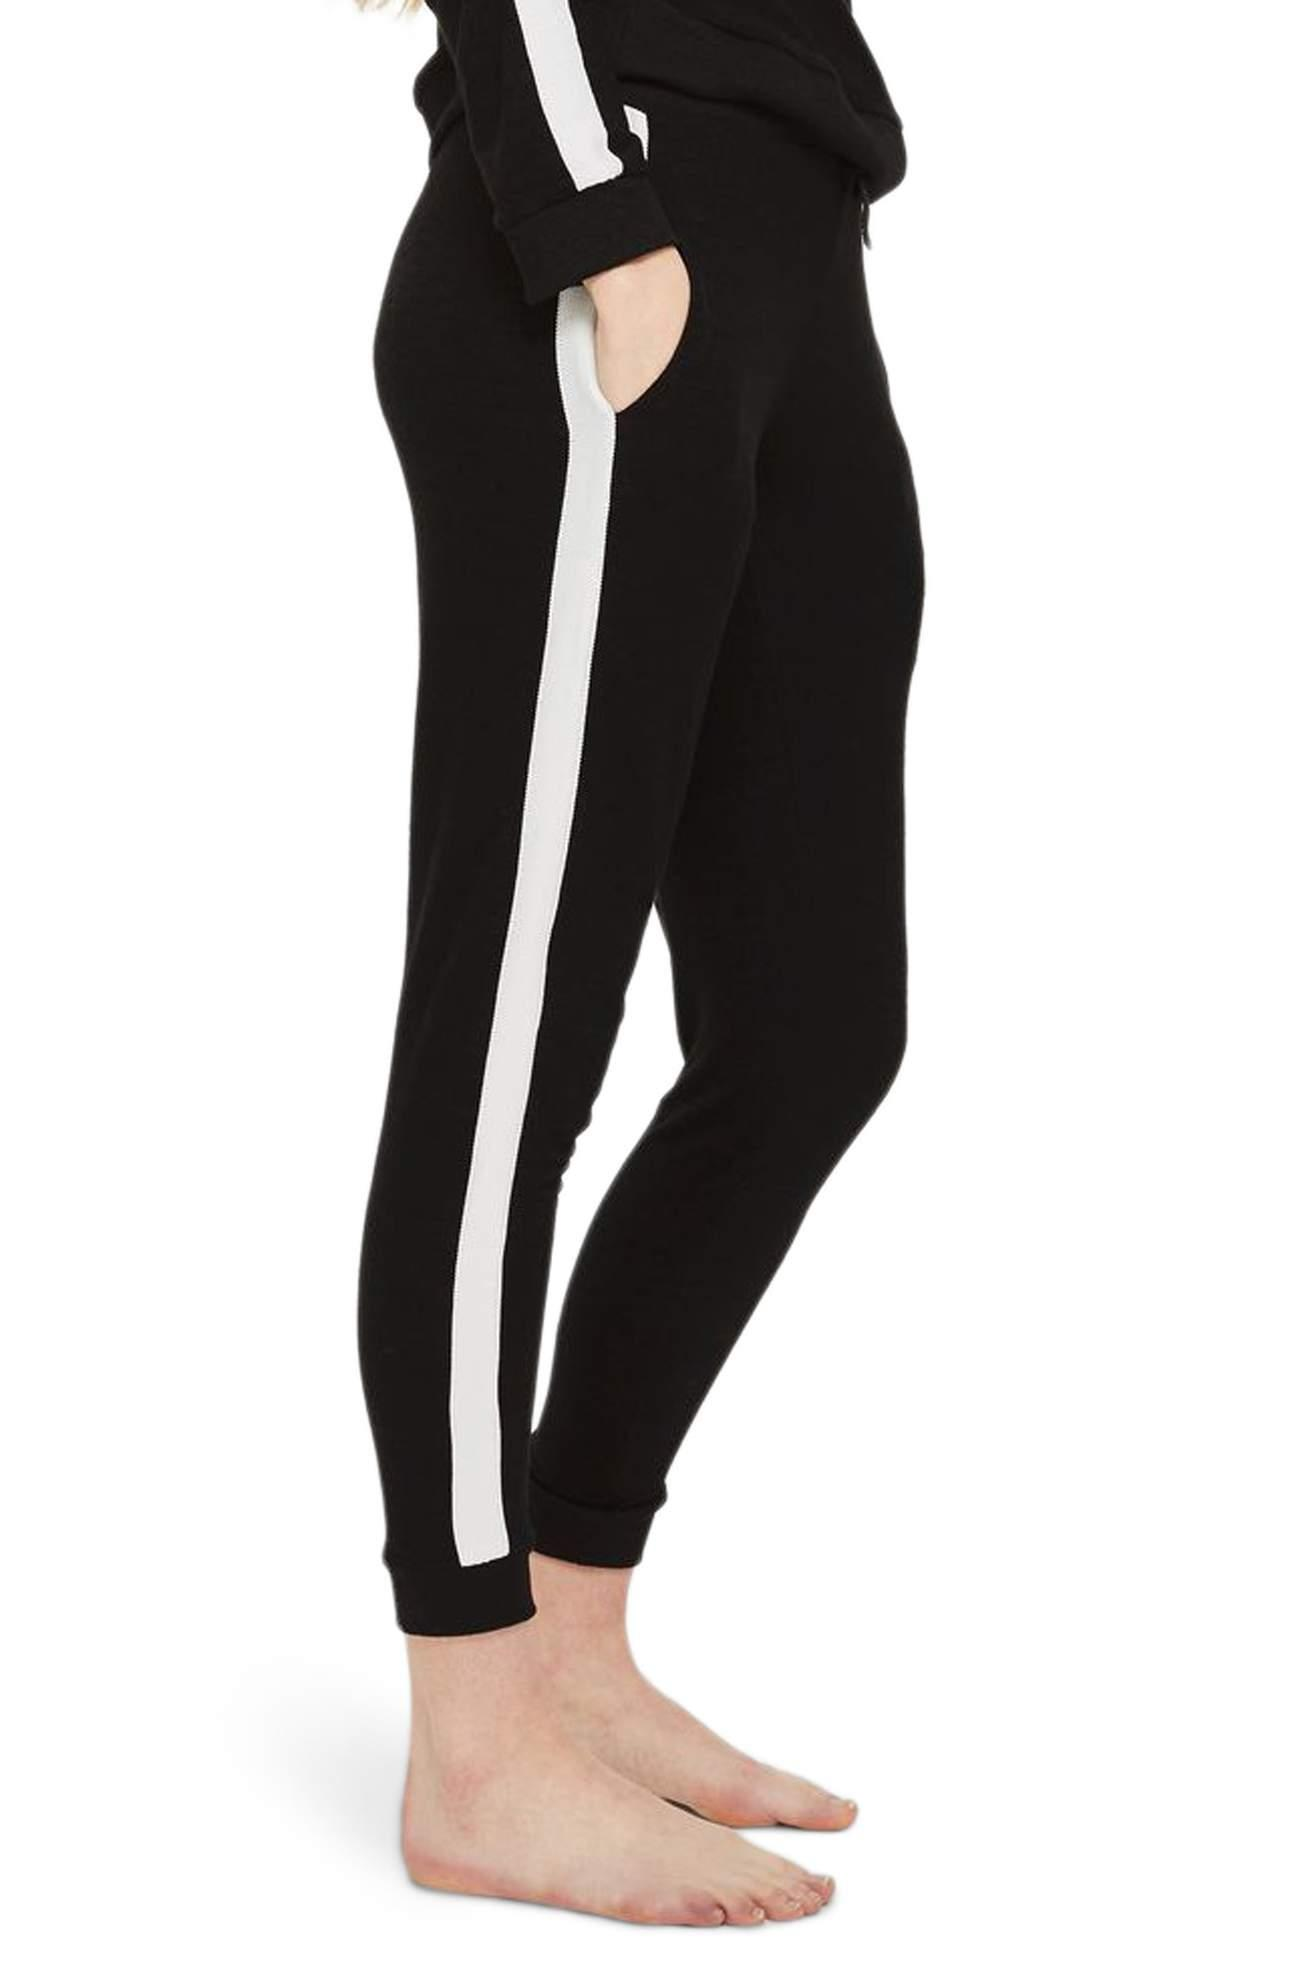 <p>These Side Stripe Jogger Pants/TOPSHOP are a perfect combo of style meets comfort.{&nbsp;} Cuddle up after a long day in supersoft jogger pants that are sure to keep you comfy and cozy. $40.00{&nbsp;} at Nordstrom. (Image: Nordstrom){&nbsp;}</p><p></p>